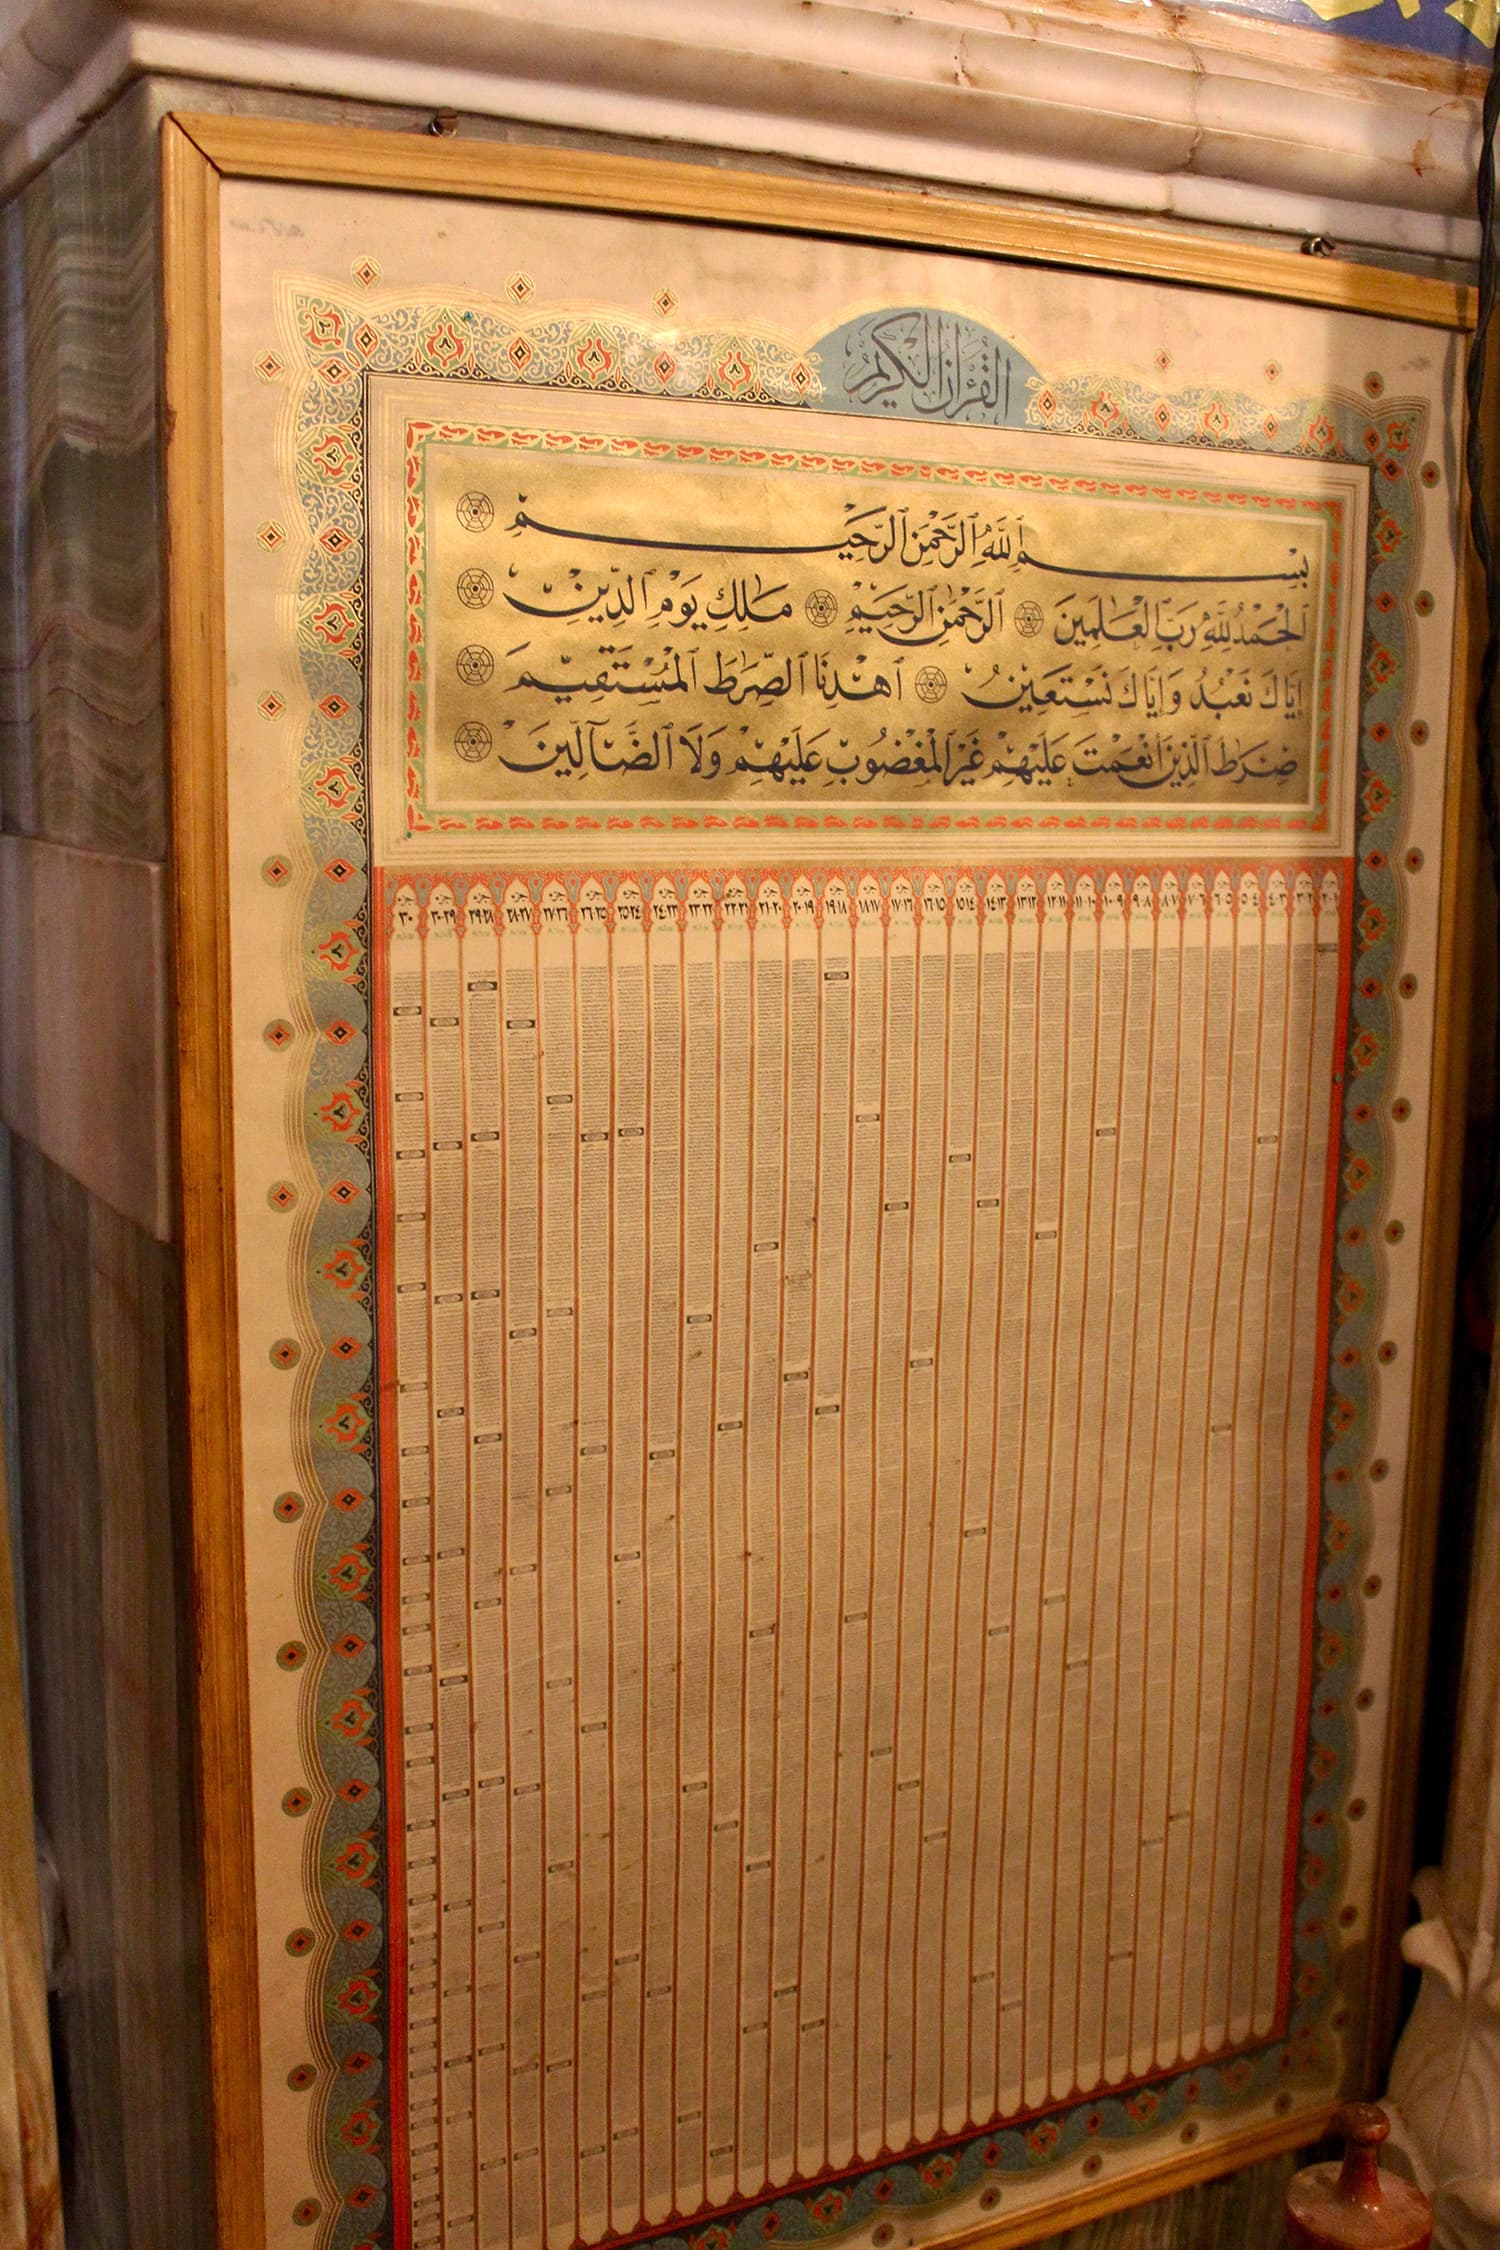 The entire Quran on one piece of parchment.